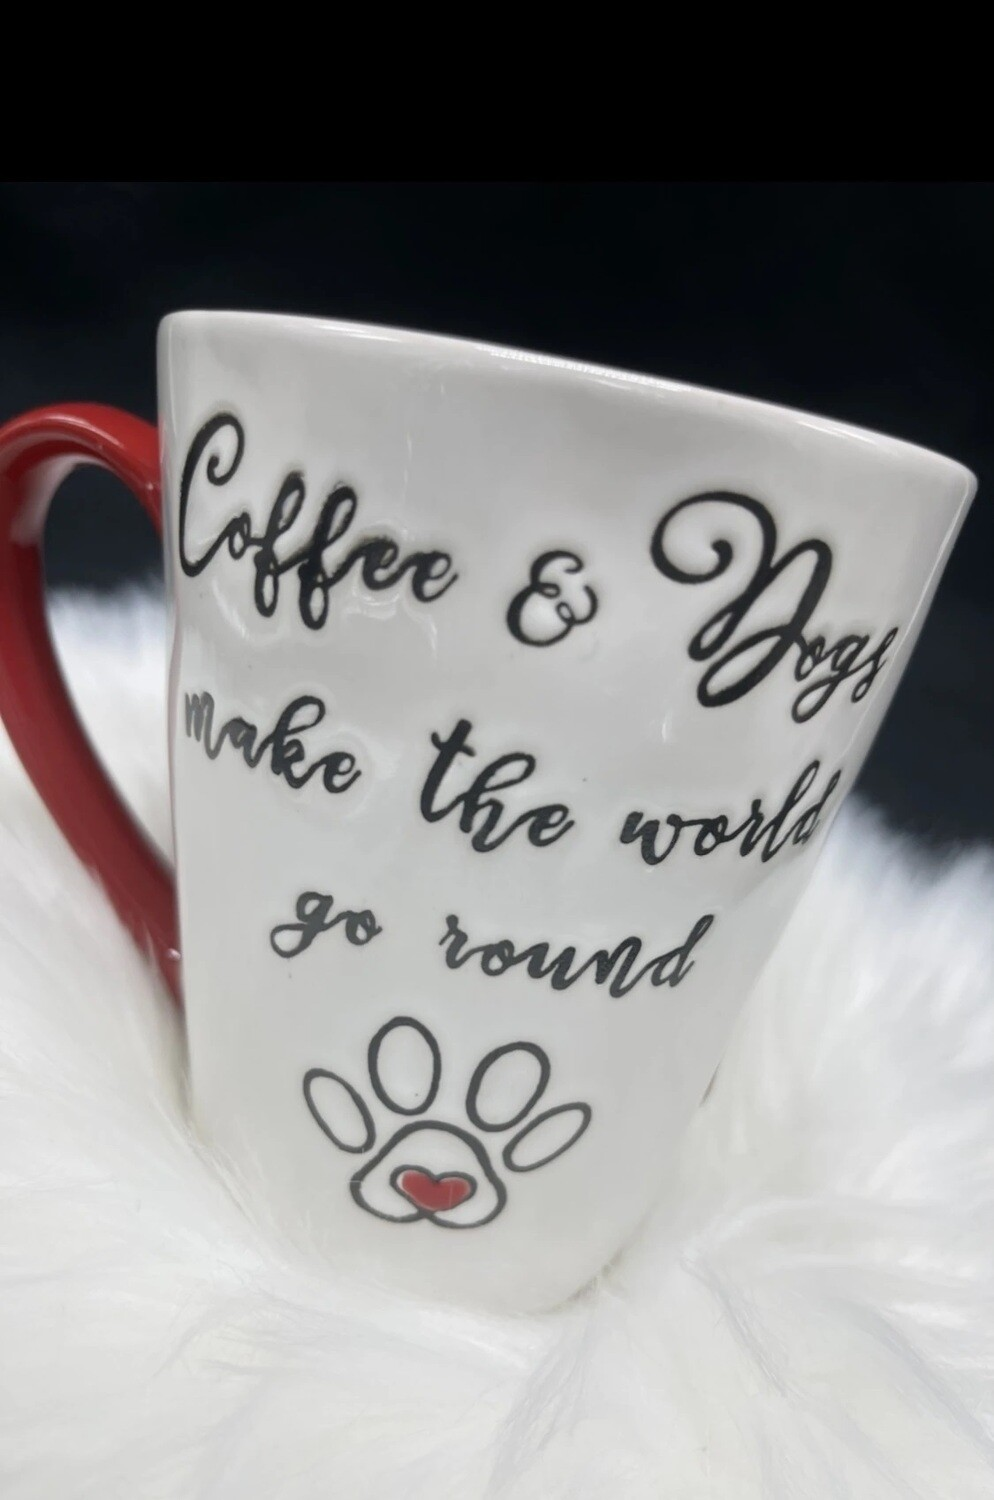 Mug w/Paw: 'Coffee & Dogs Make World Go Round'